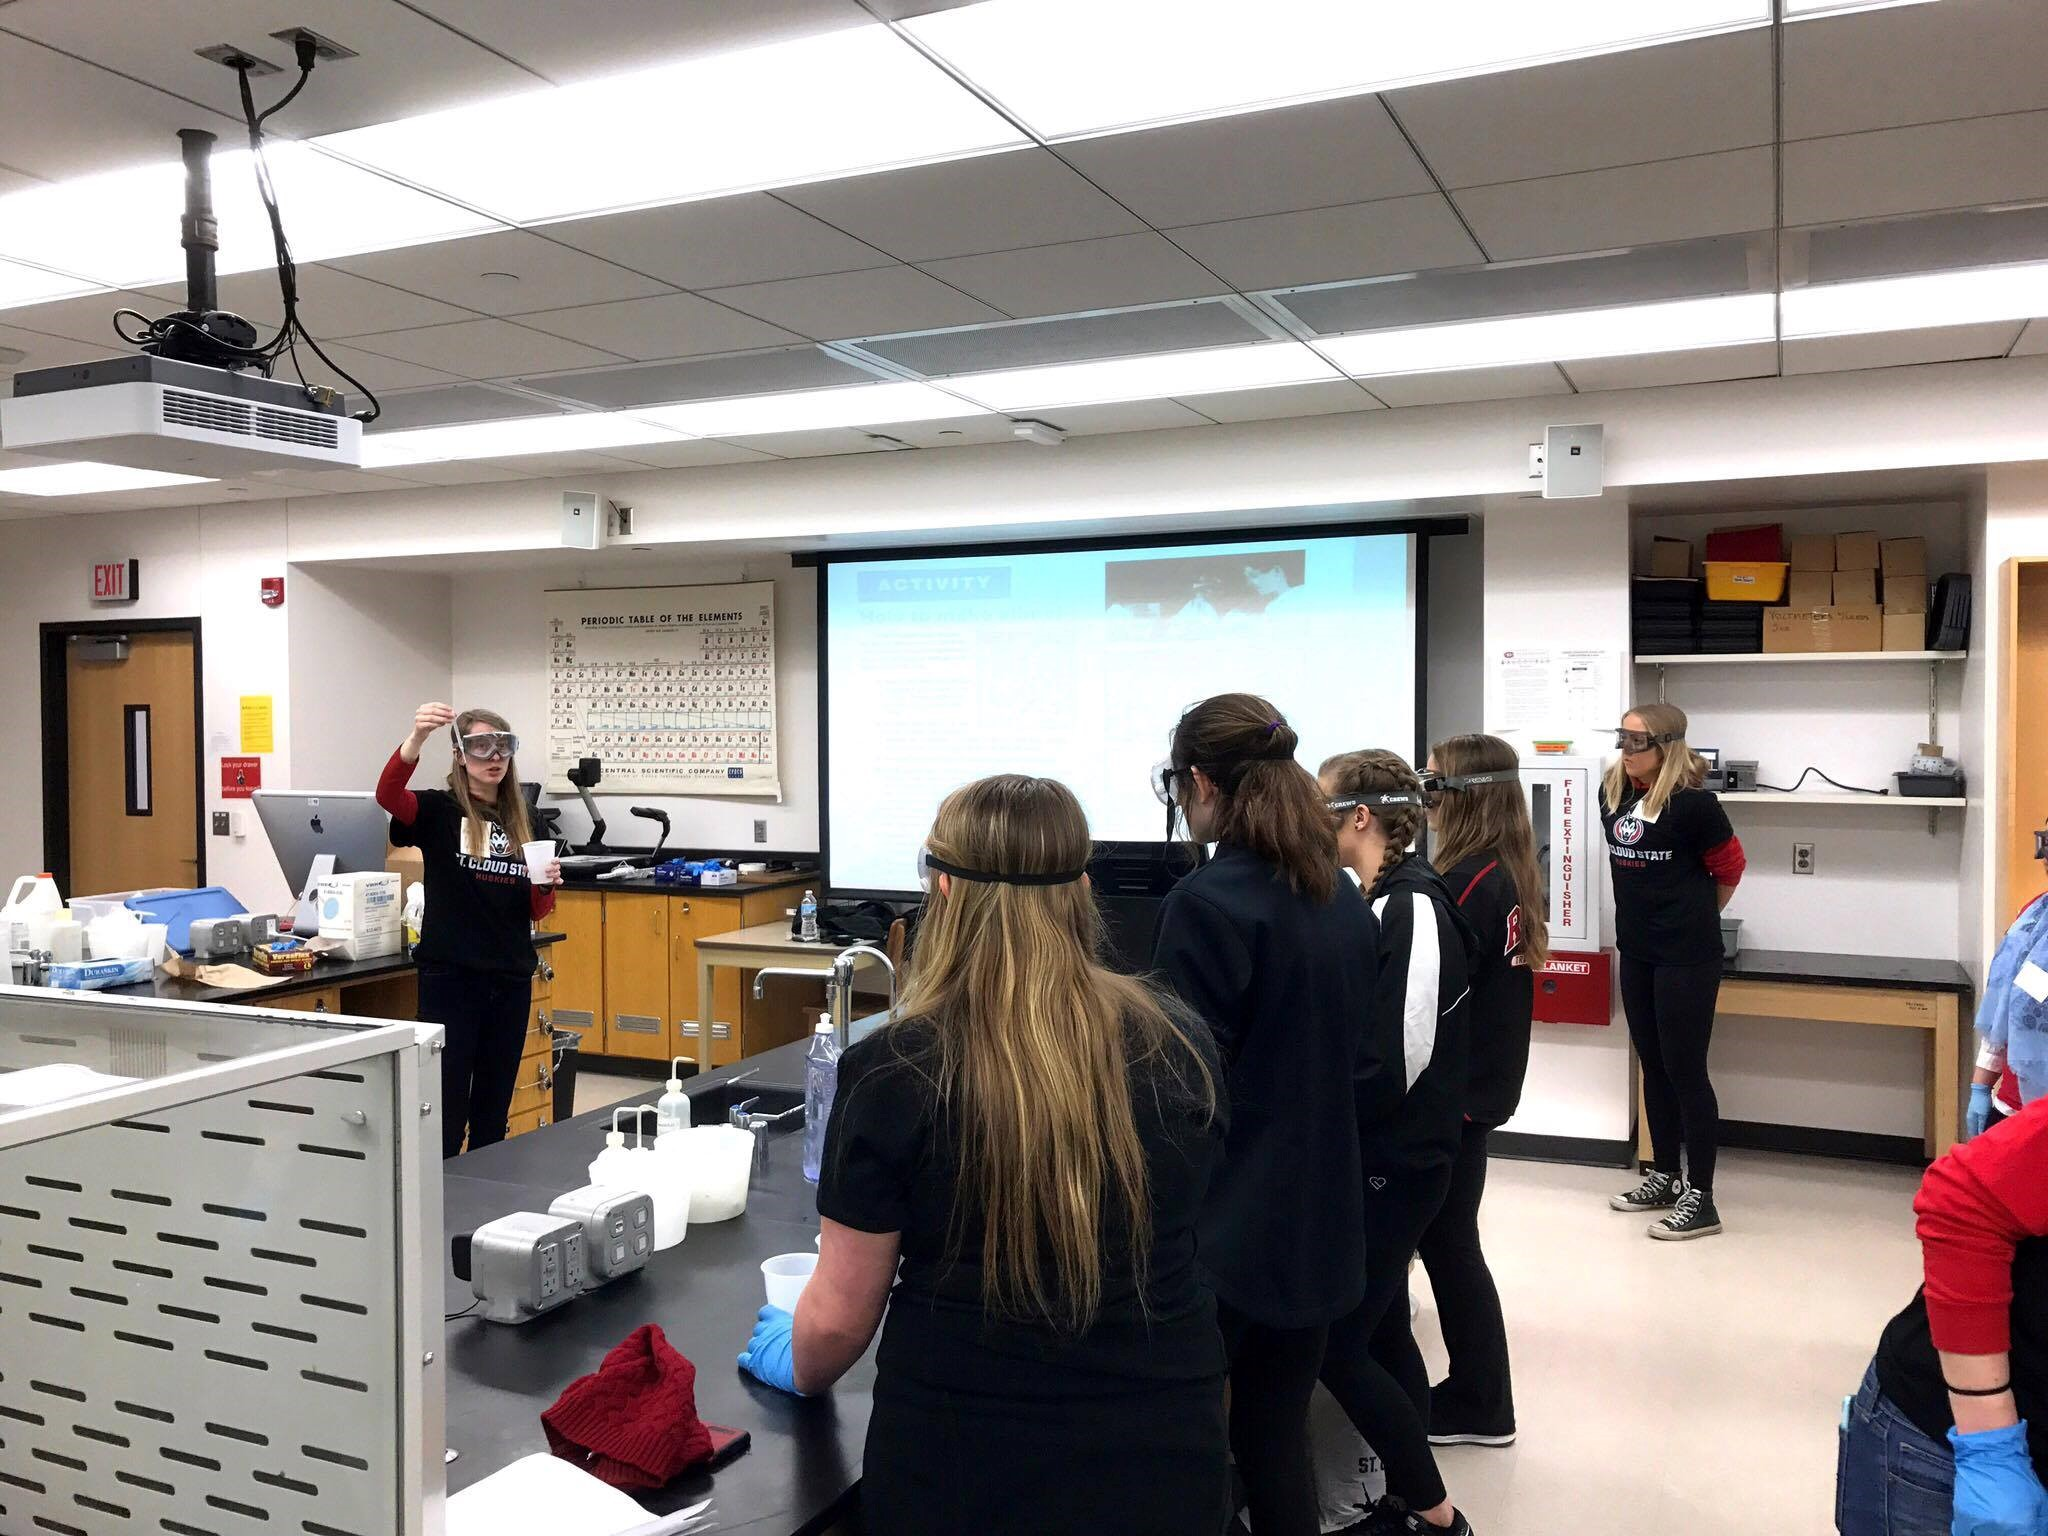 This was taken on March 18th on SCSU campus at the Horizons day camp for high school girls interested in STEM careers. I was teaching them how to use proper technique in the lab!